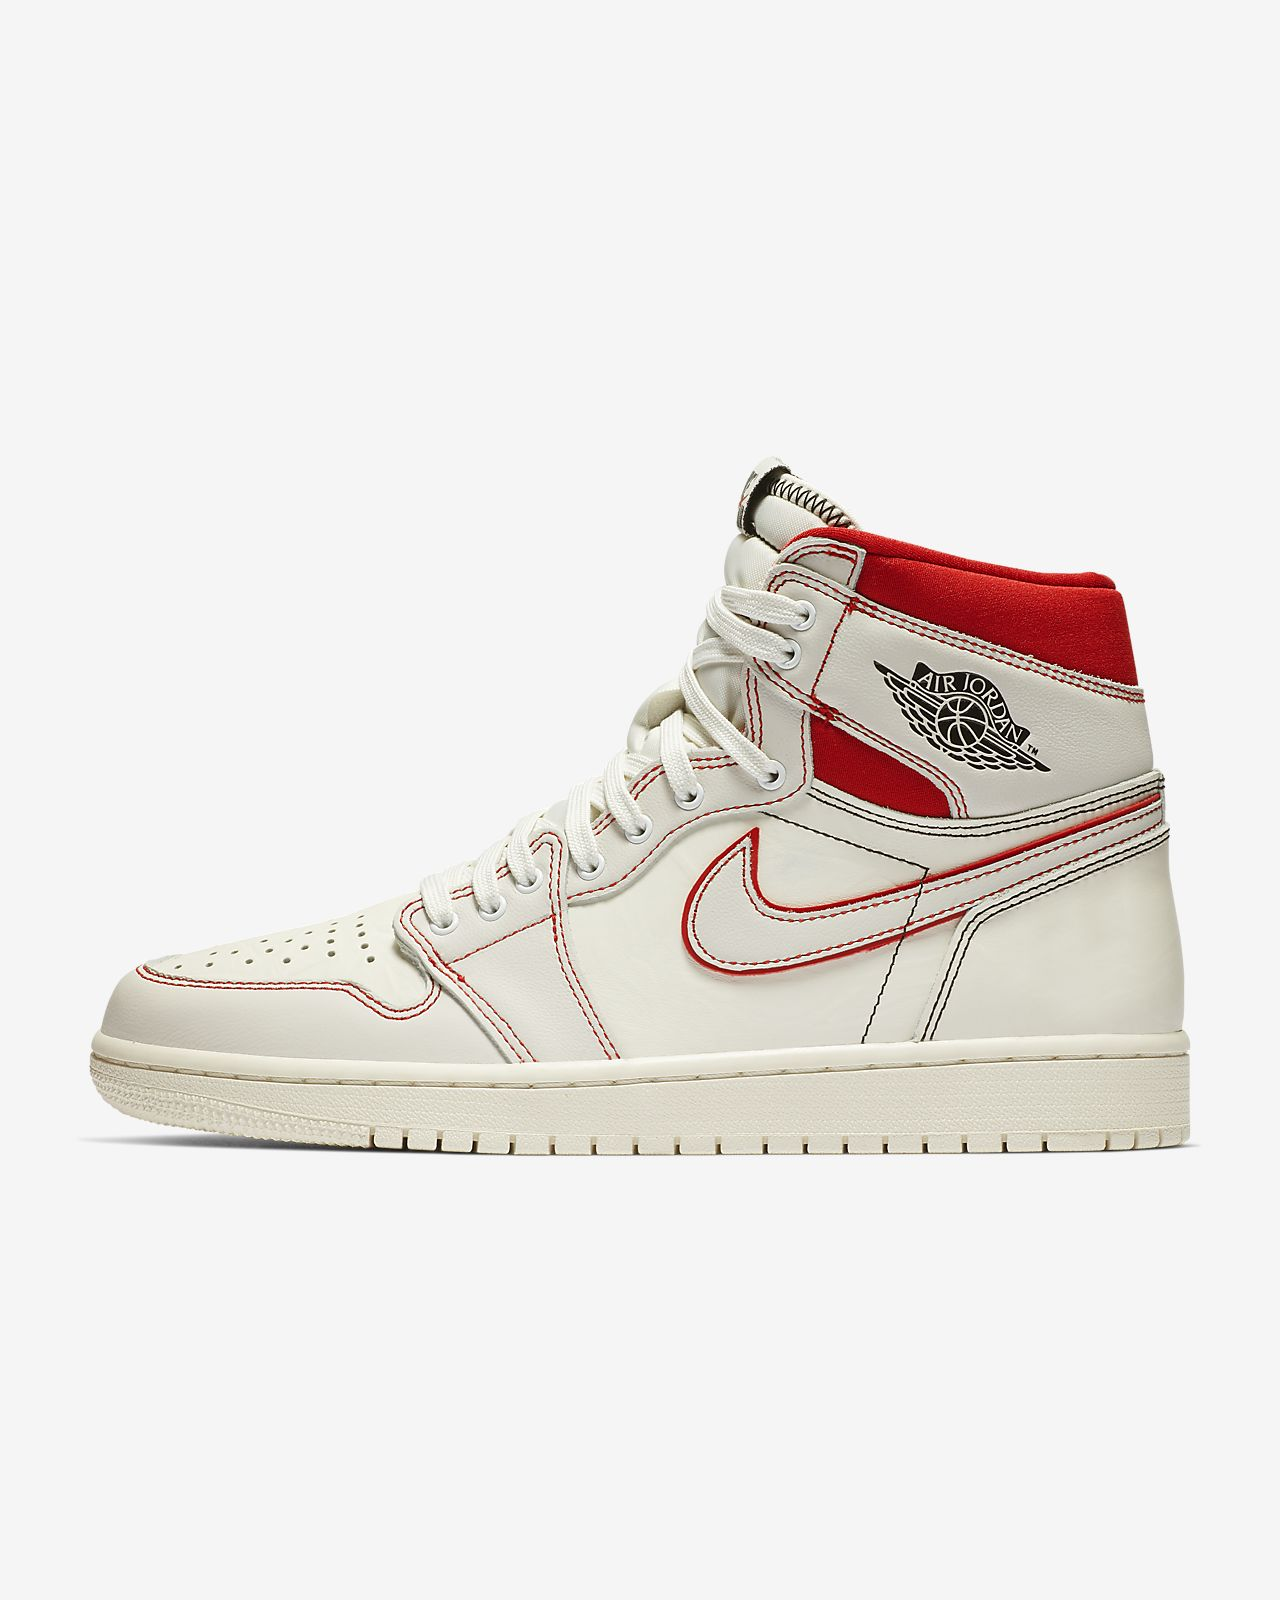 4e8b4b37bd7a Air Jordan 1 Retro High OG Shoe. Nike.com